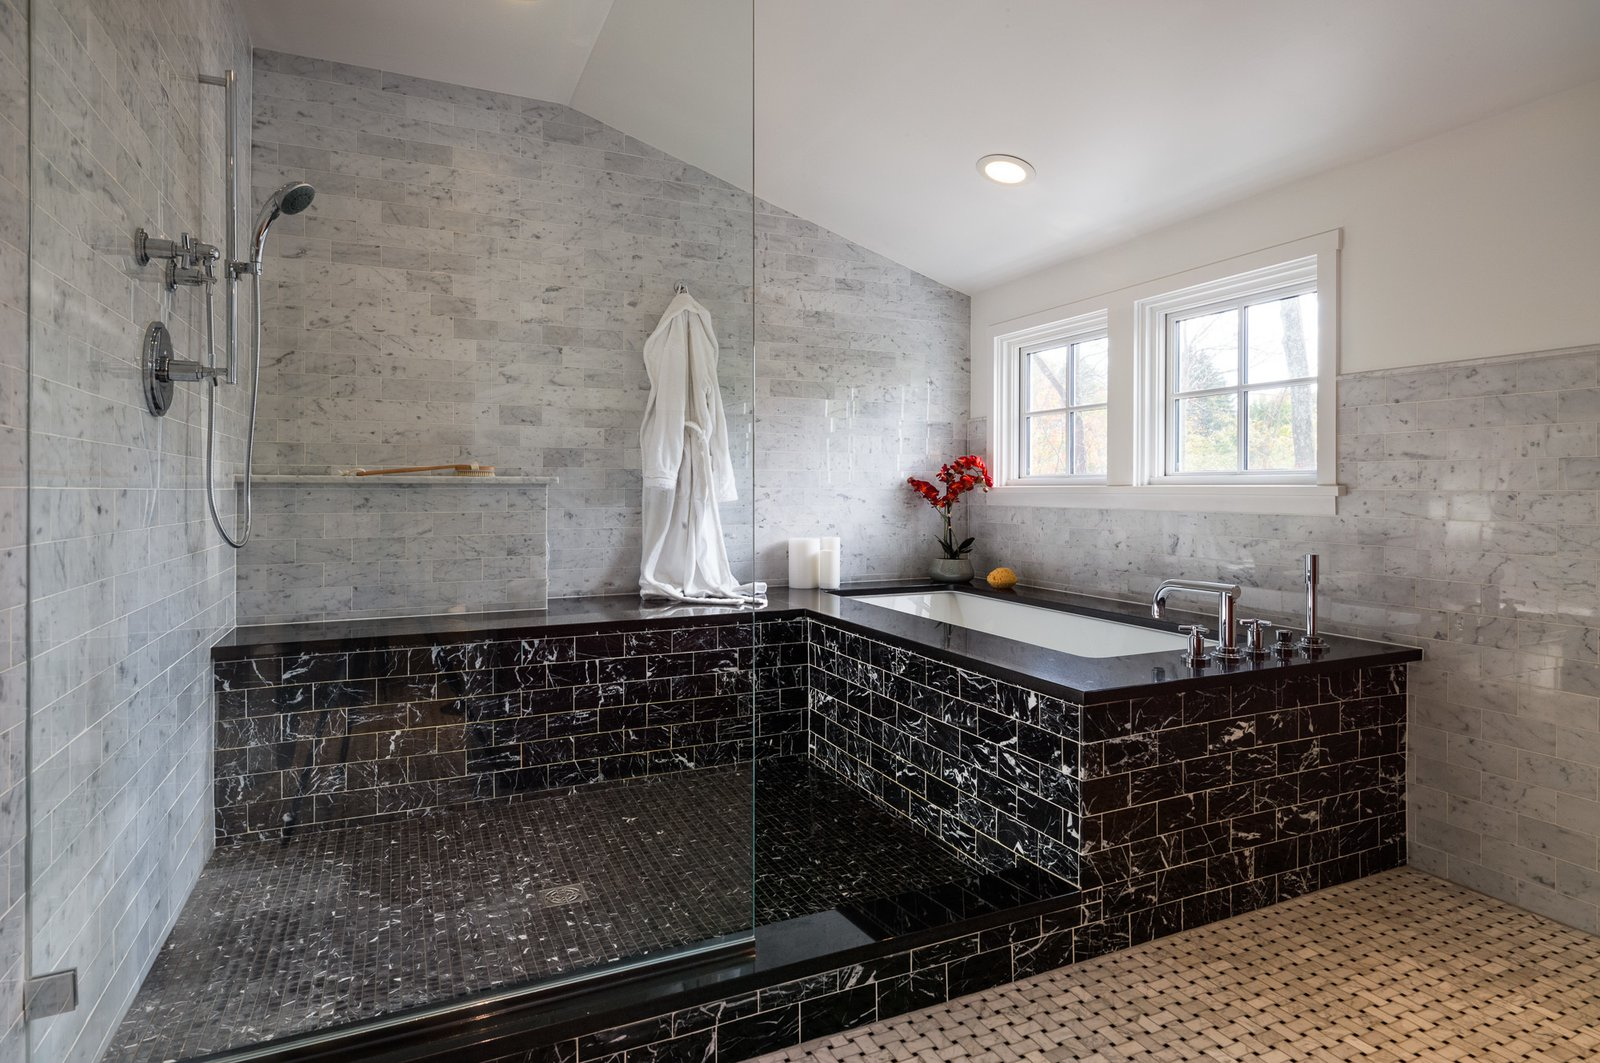 """Marble was used throughout the master bathroom in order to create a timeless feel that would age well. """"The hope is that in 15 years, you won't look at the room and think, 'oh, that tile was only popular in 2015,"""" Michael says.  Photo 6 of 8 in A Loving Renovation Updates a Rustic Family Home with Reclaimed Materials"""